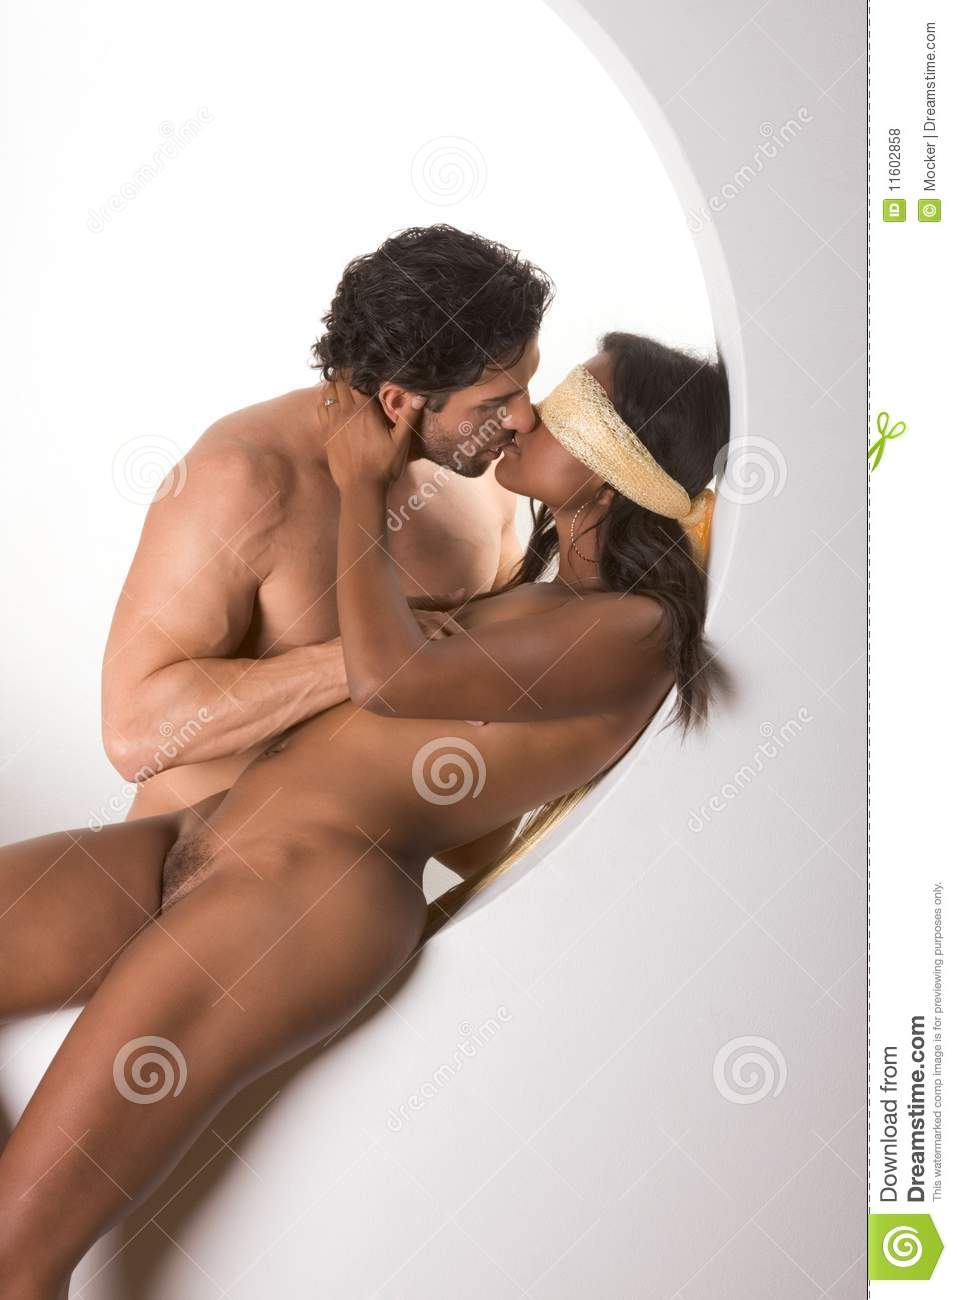 Nude Women Couples 2